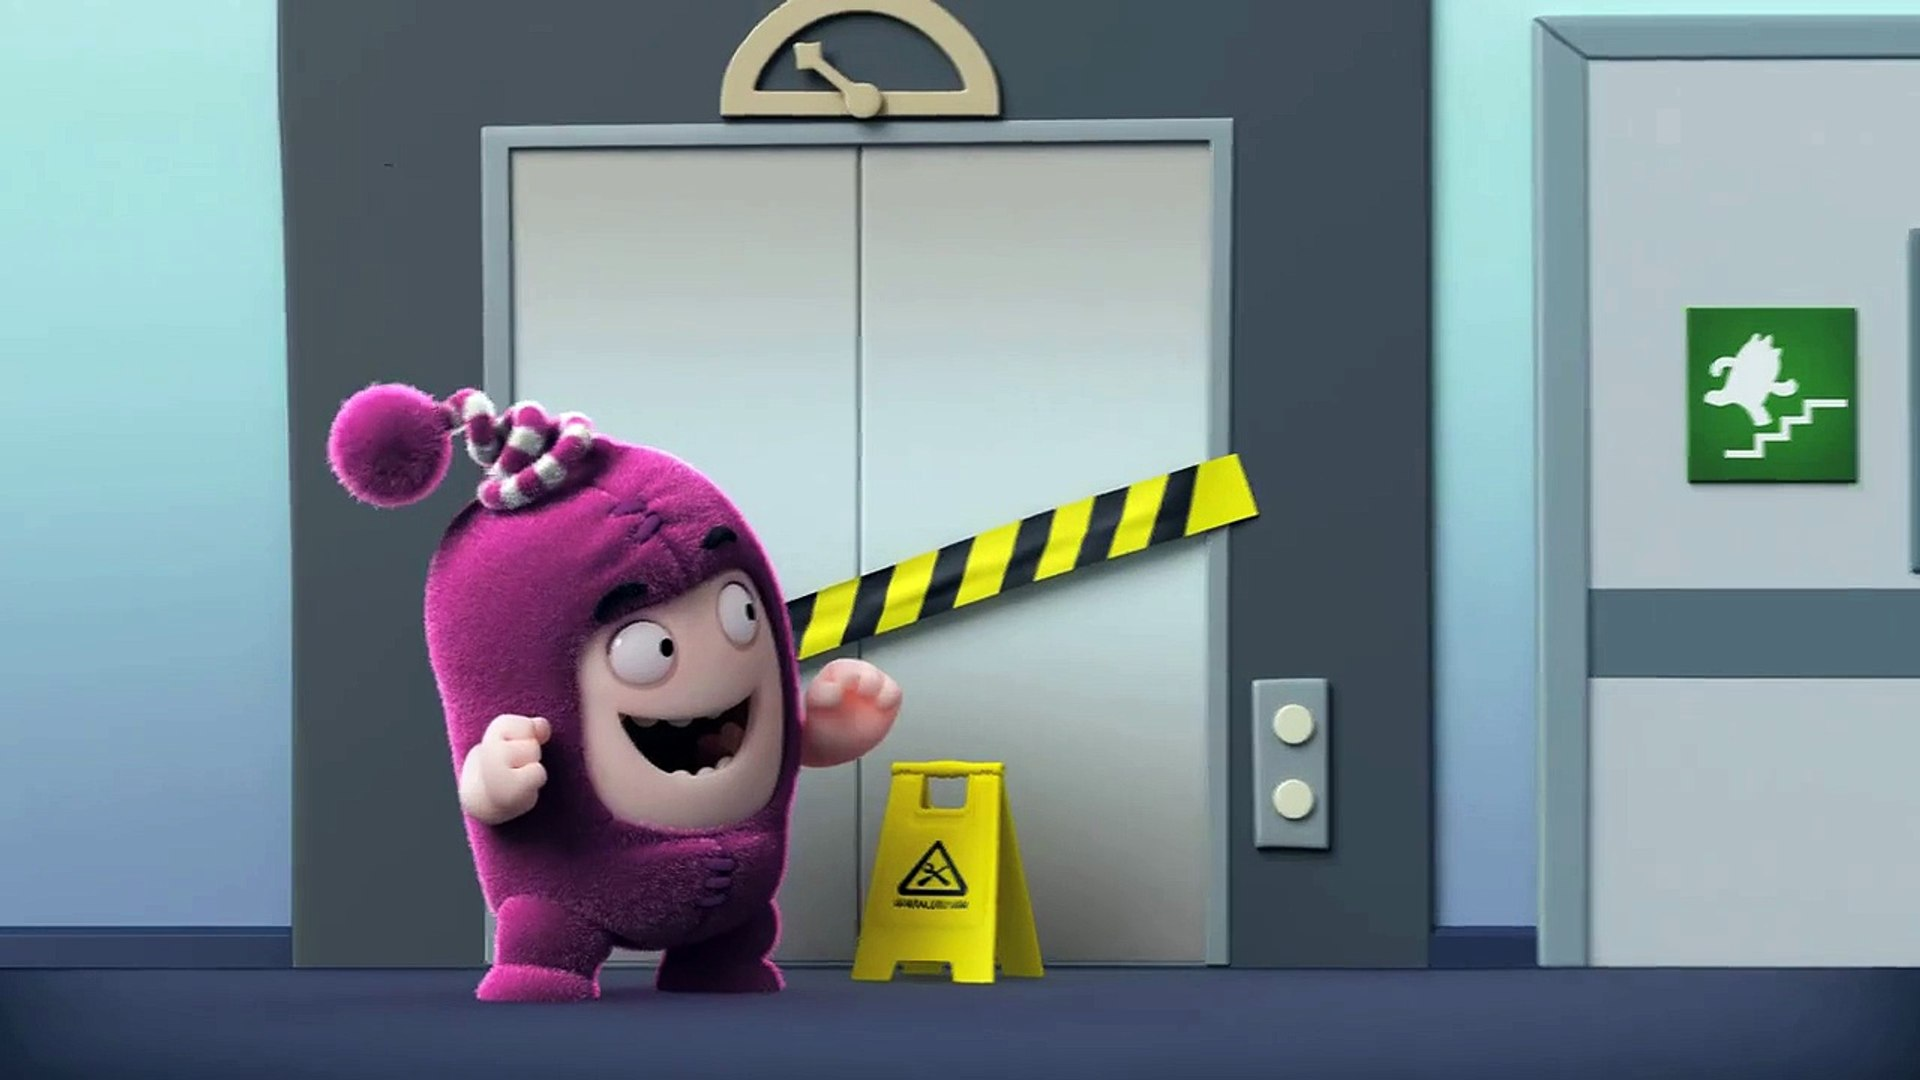 Oddbods _ Newt and the Stairs Watch tv series movies 2017 Watch tv series movies 2017